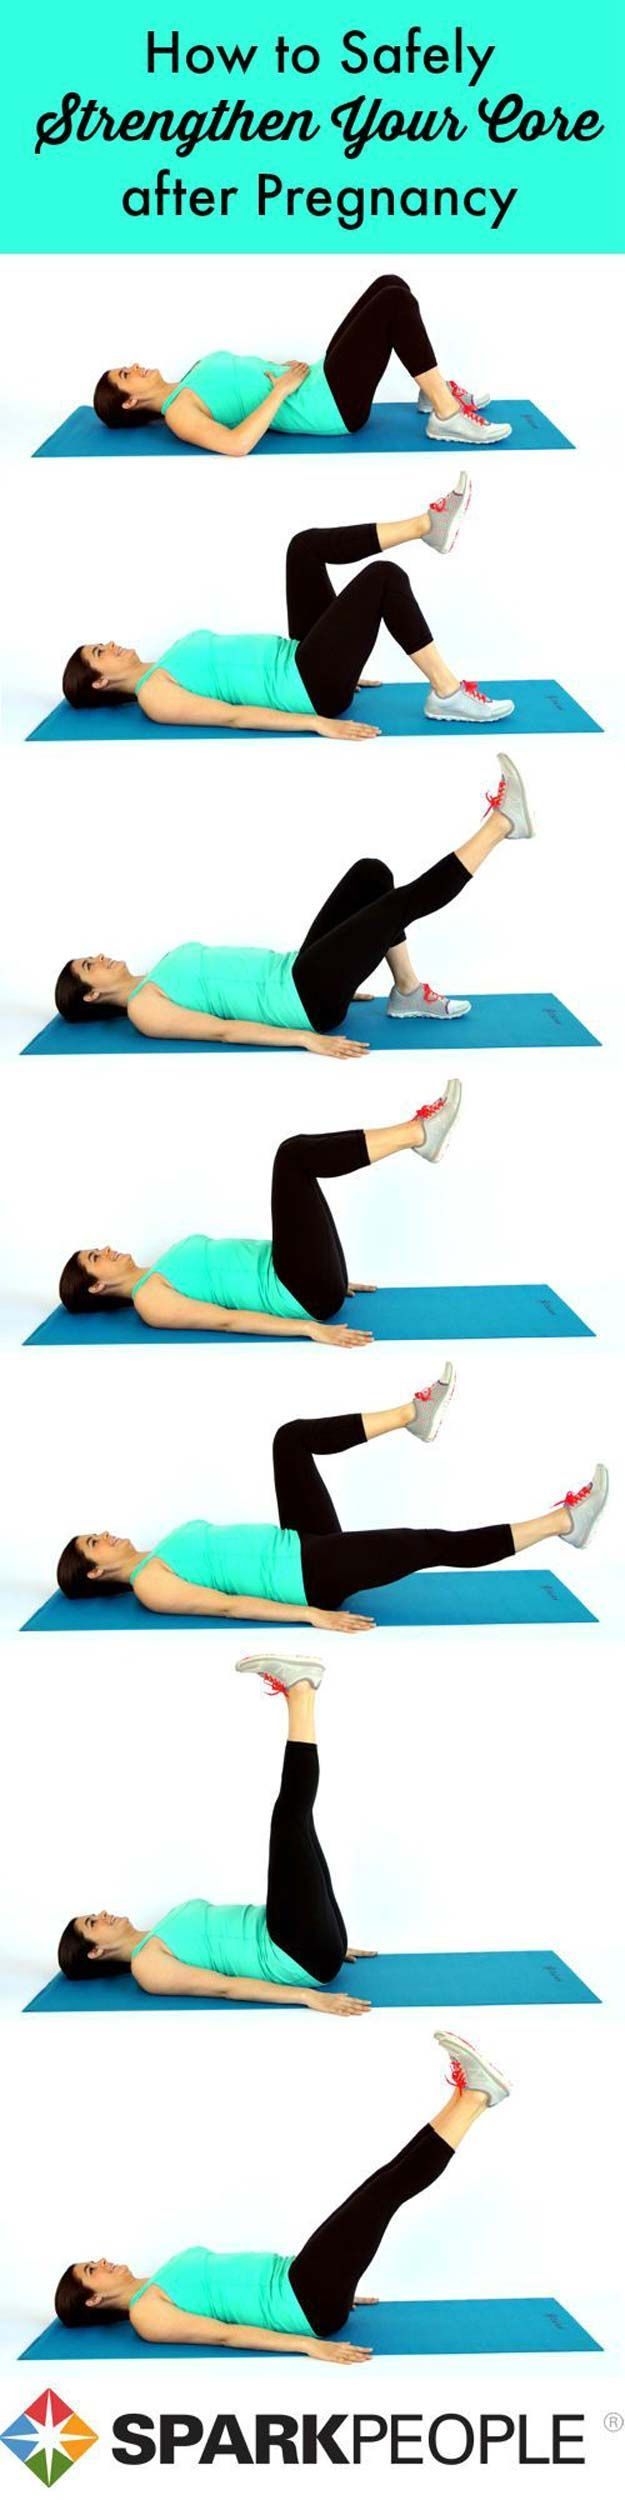 Best Exercises for Abs - Exercises to Rebuild Your Core after Pregnancy - Best Ab Exercises And Ab Workouts For A Flat Stomach, Increased Health Fitness, And Weightless. Ab Exercises For Women, For Men, And For Kids. Great With A Diet To Help With Losing Weight From The Lower Belly, Getting Rid Of That Muffin Top, And Increasing Muscle To Refine Your Stomach And Hip Shape. Fat Burners And Calorie Burners For A Flat Belly, Six Pack Abs, And Summer Beach Body. Crunches And More…